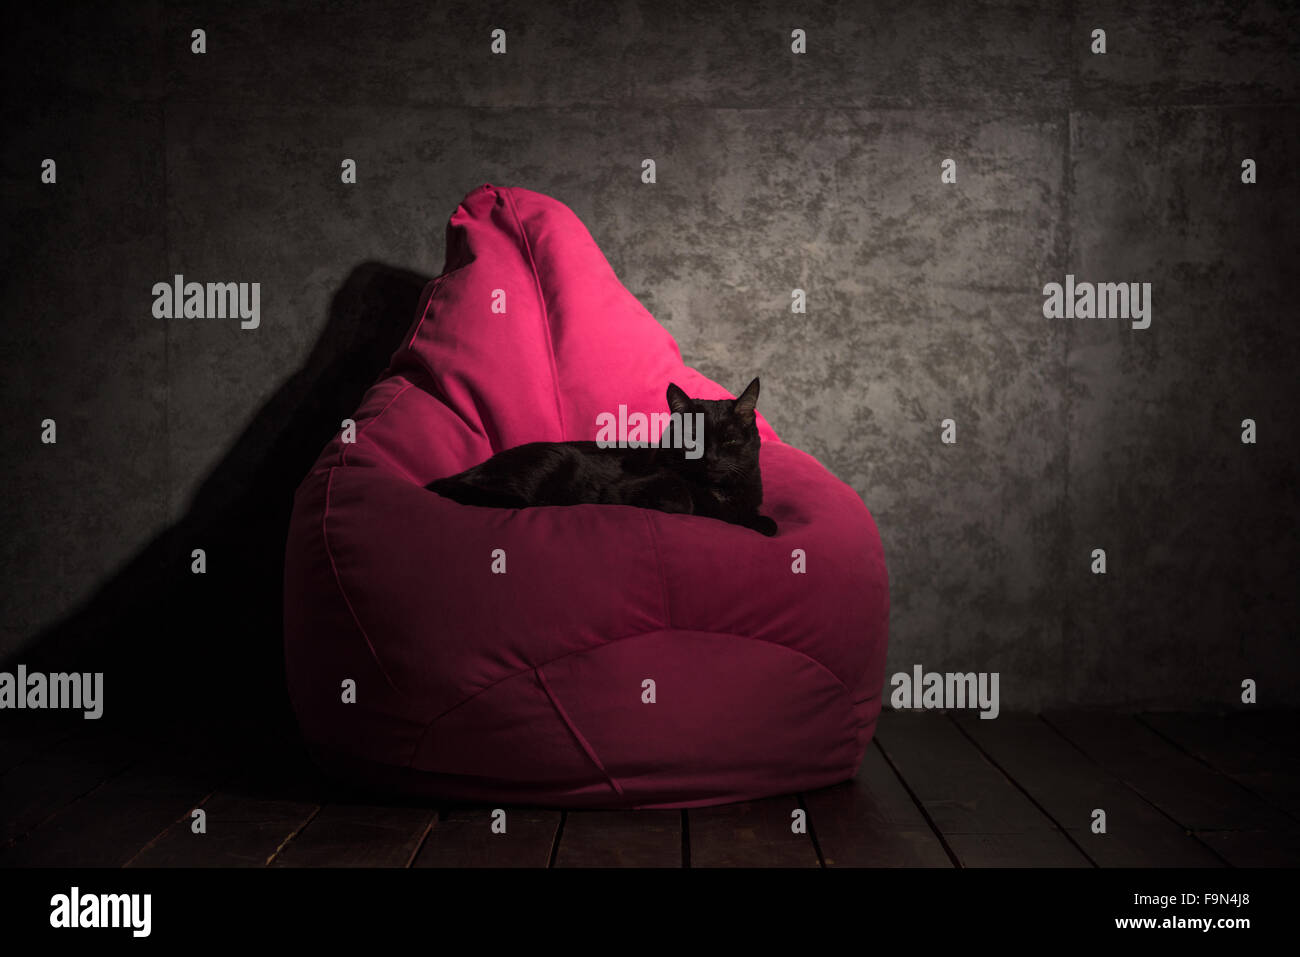 Cat and Beanbag at home or office - Stock Image